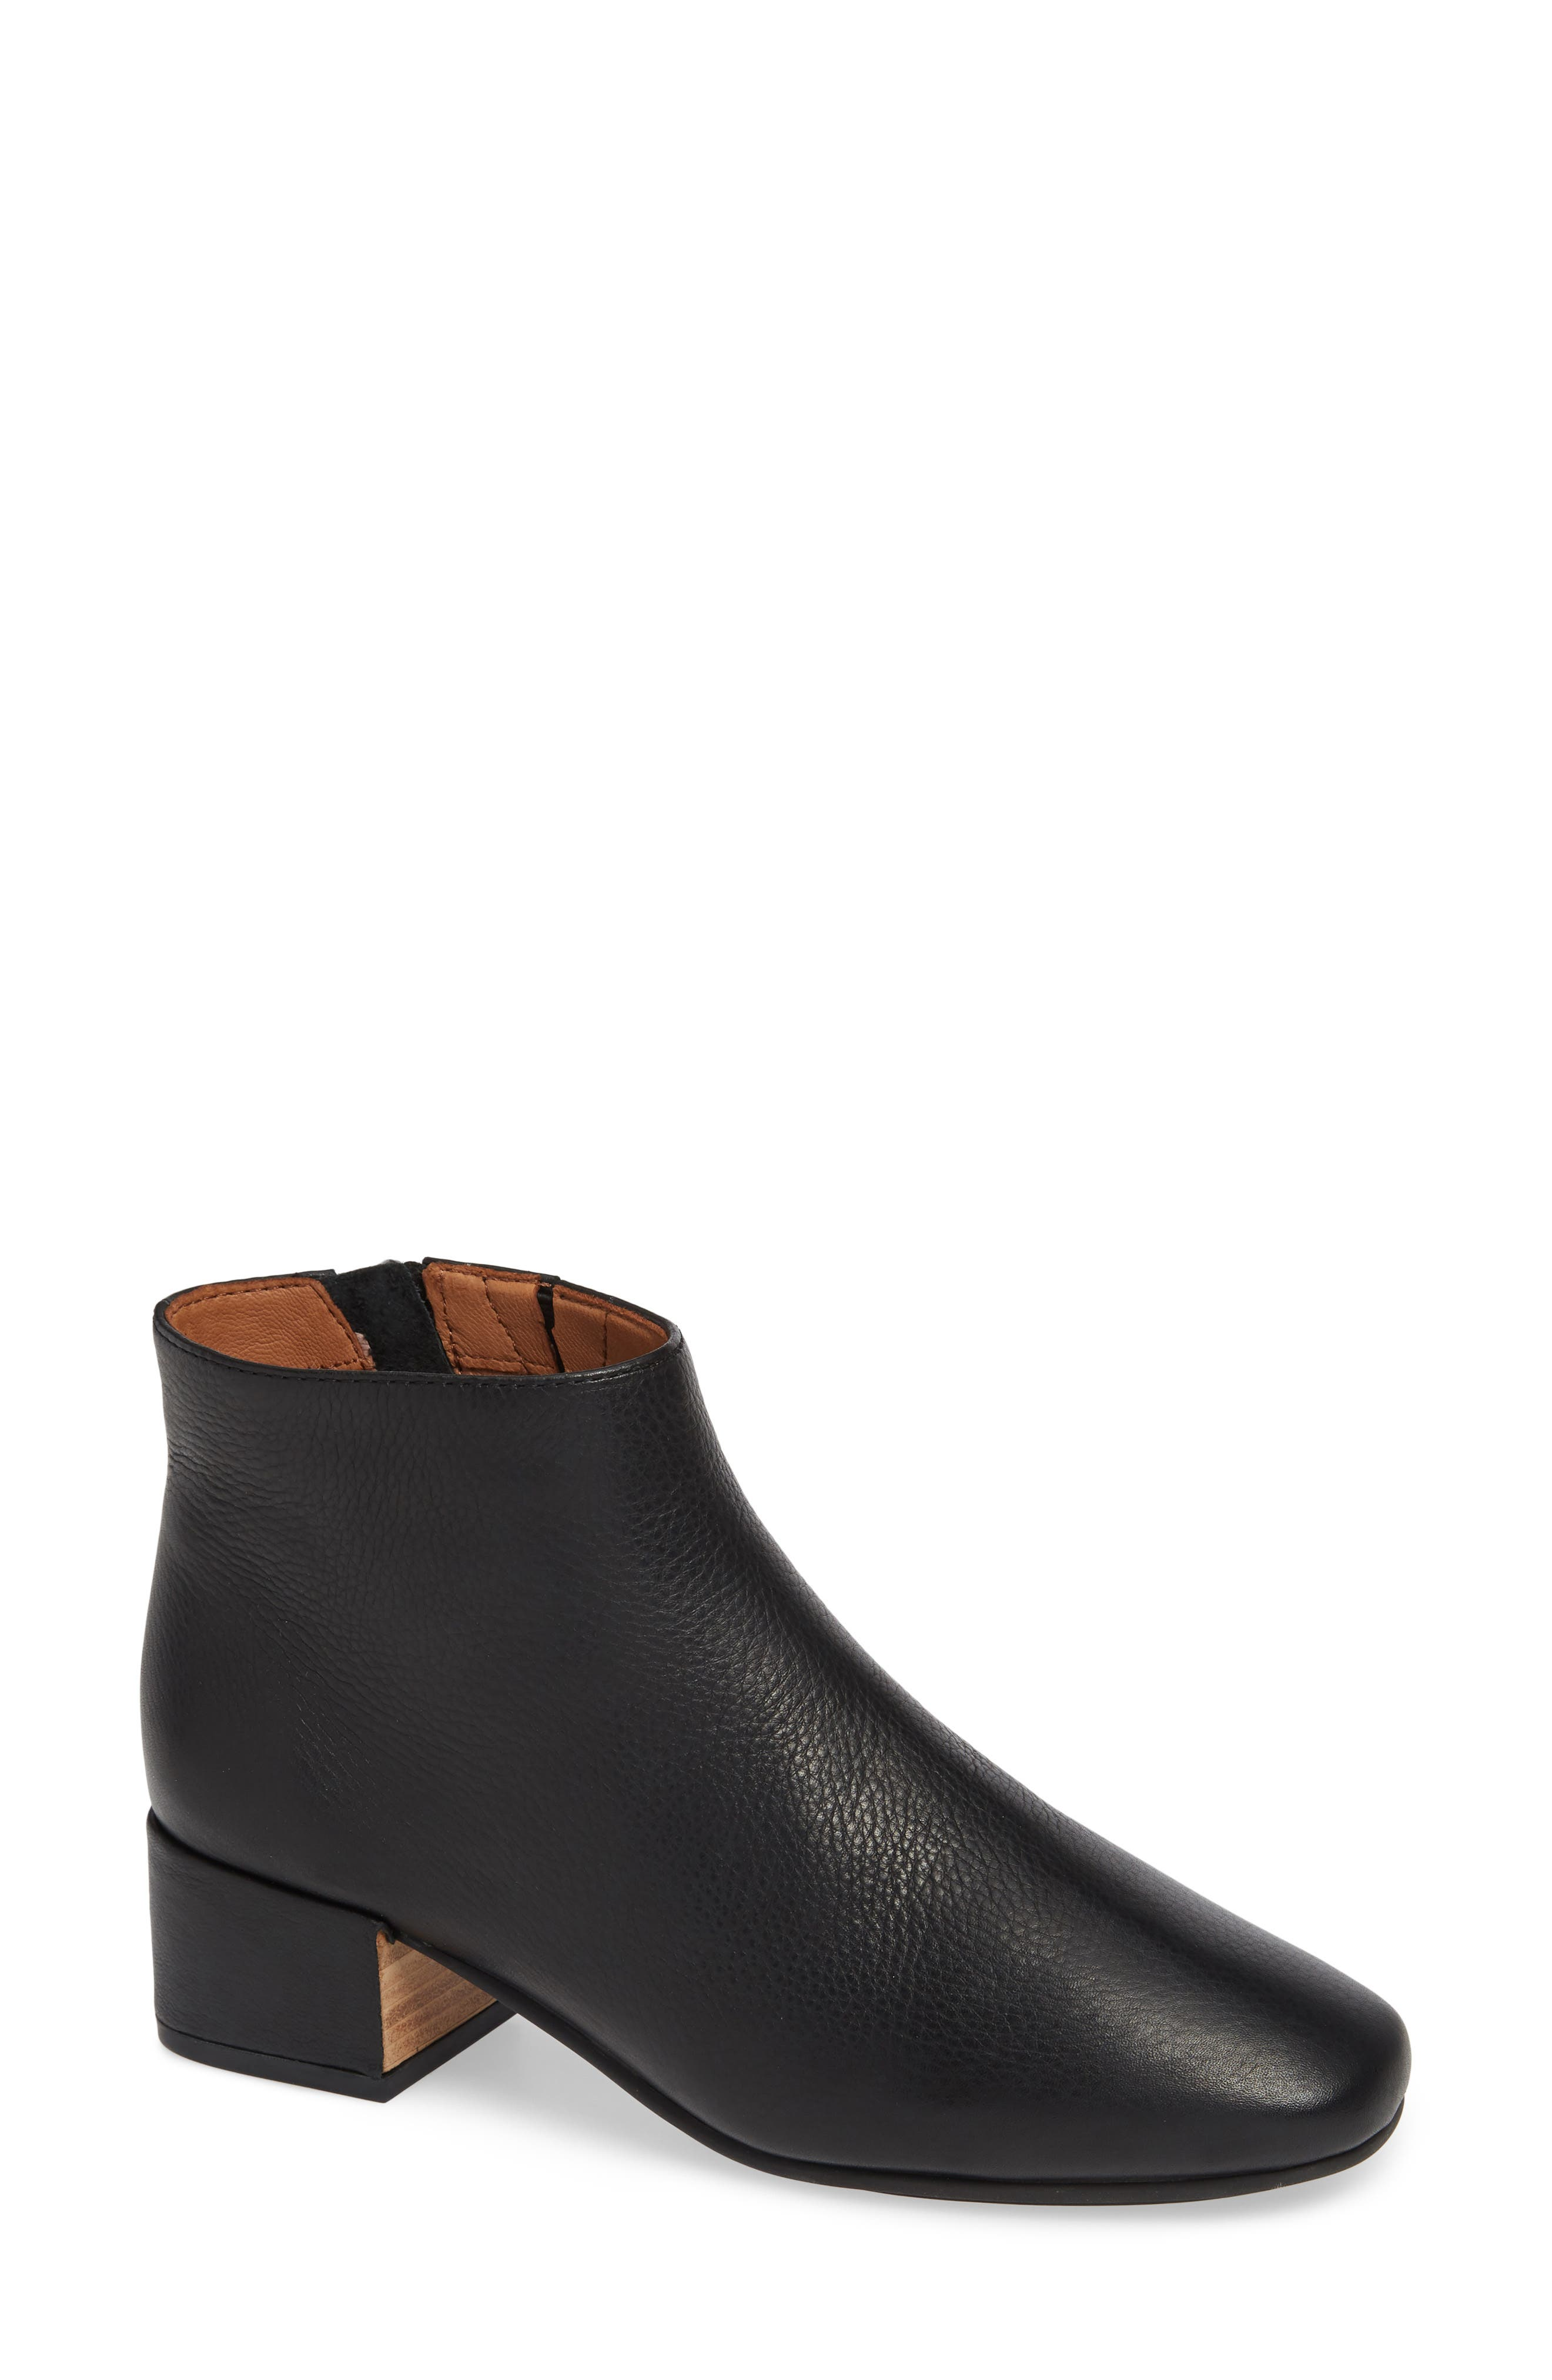 GENTLE SOULS BY KENNETH COLE Ella Bootie, Main, color, BLACK LEATHER